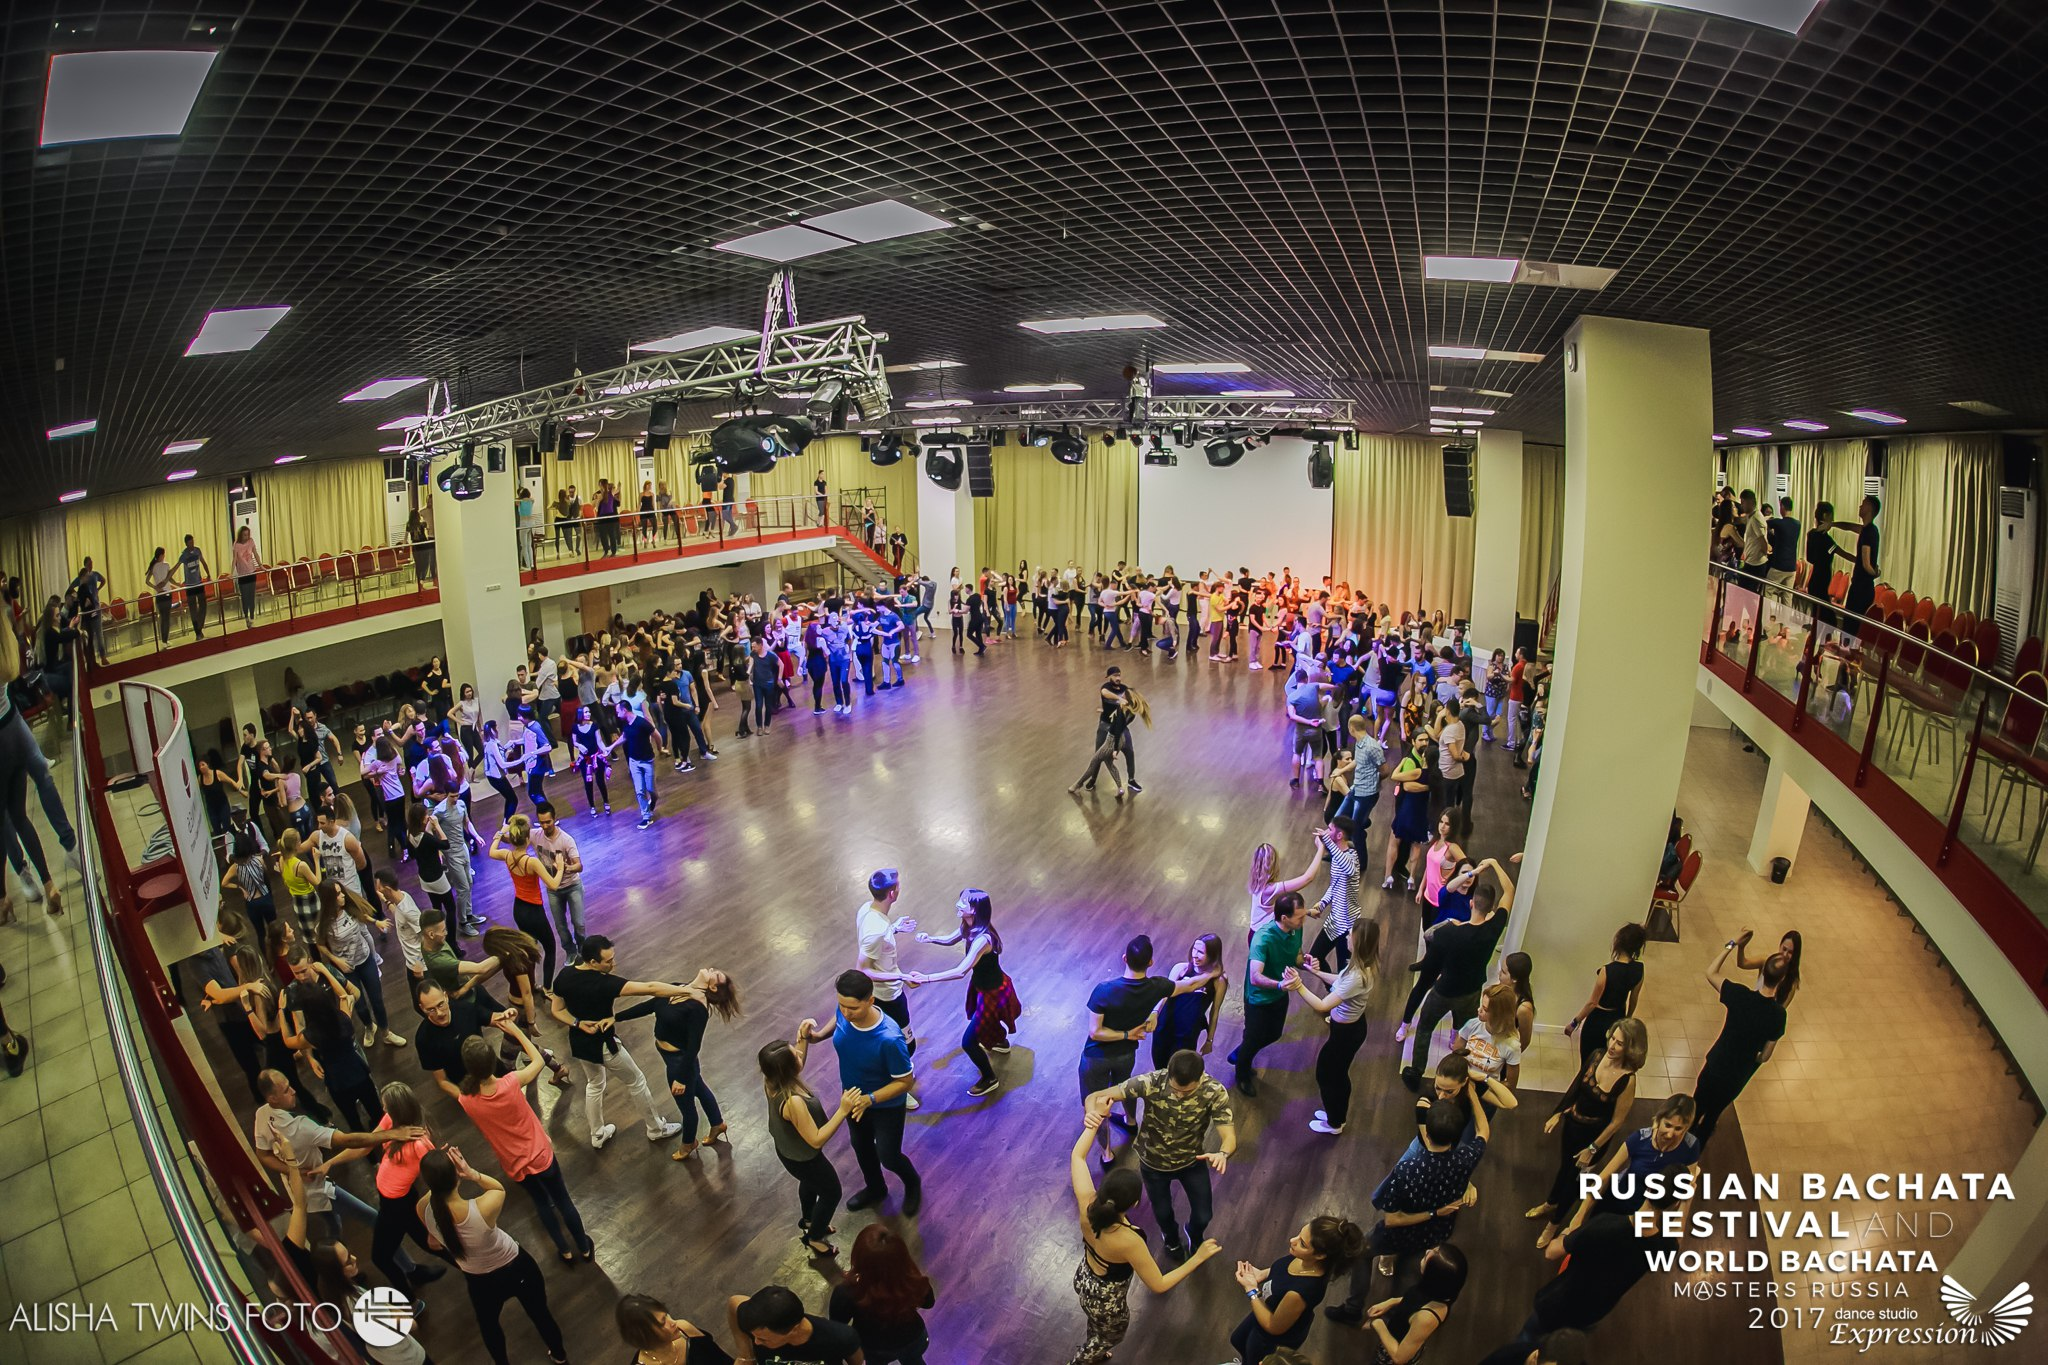 workshops on Russian Bachata Festival